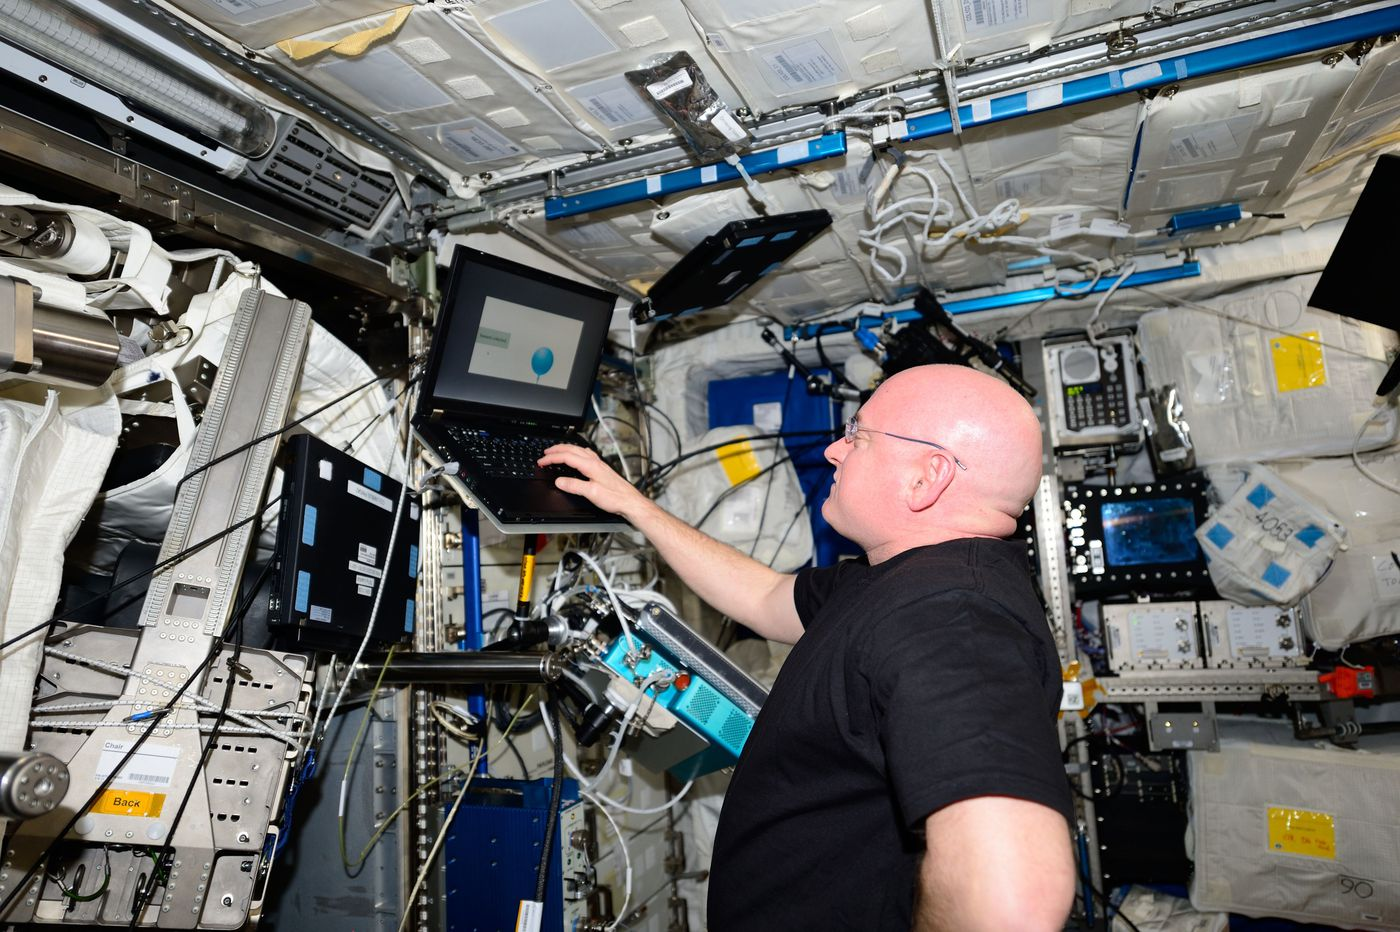 Astronaut in good health after year in space, compared with his twin. But his brain function slipped